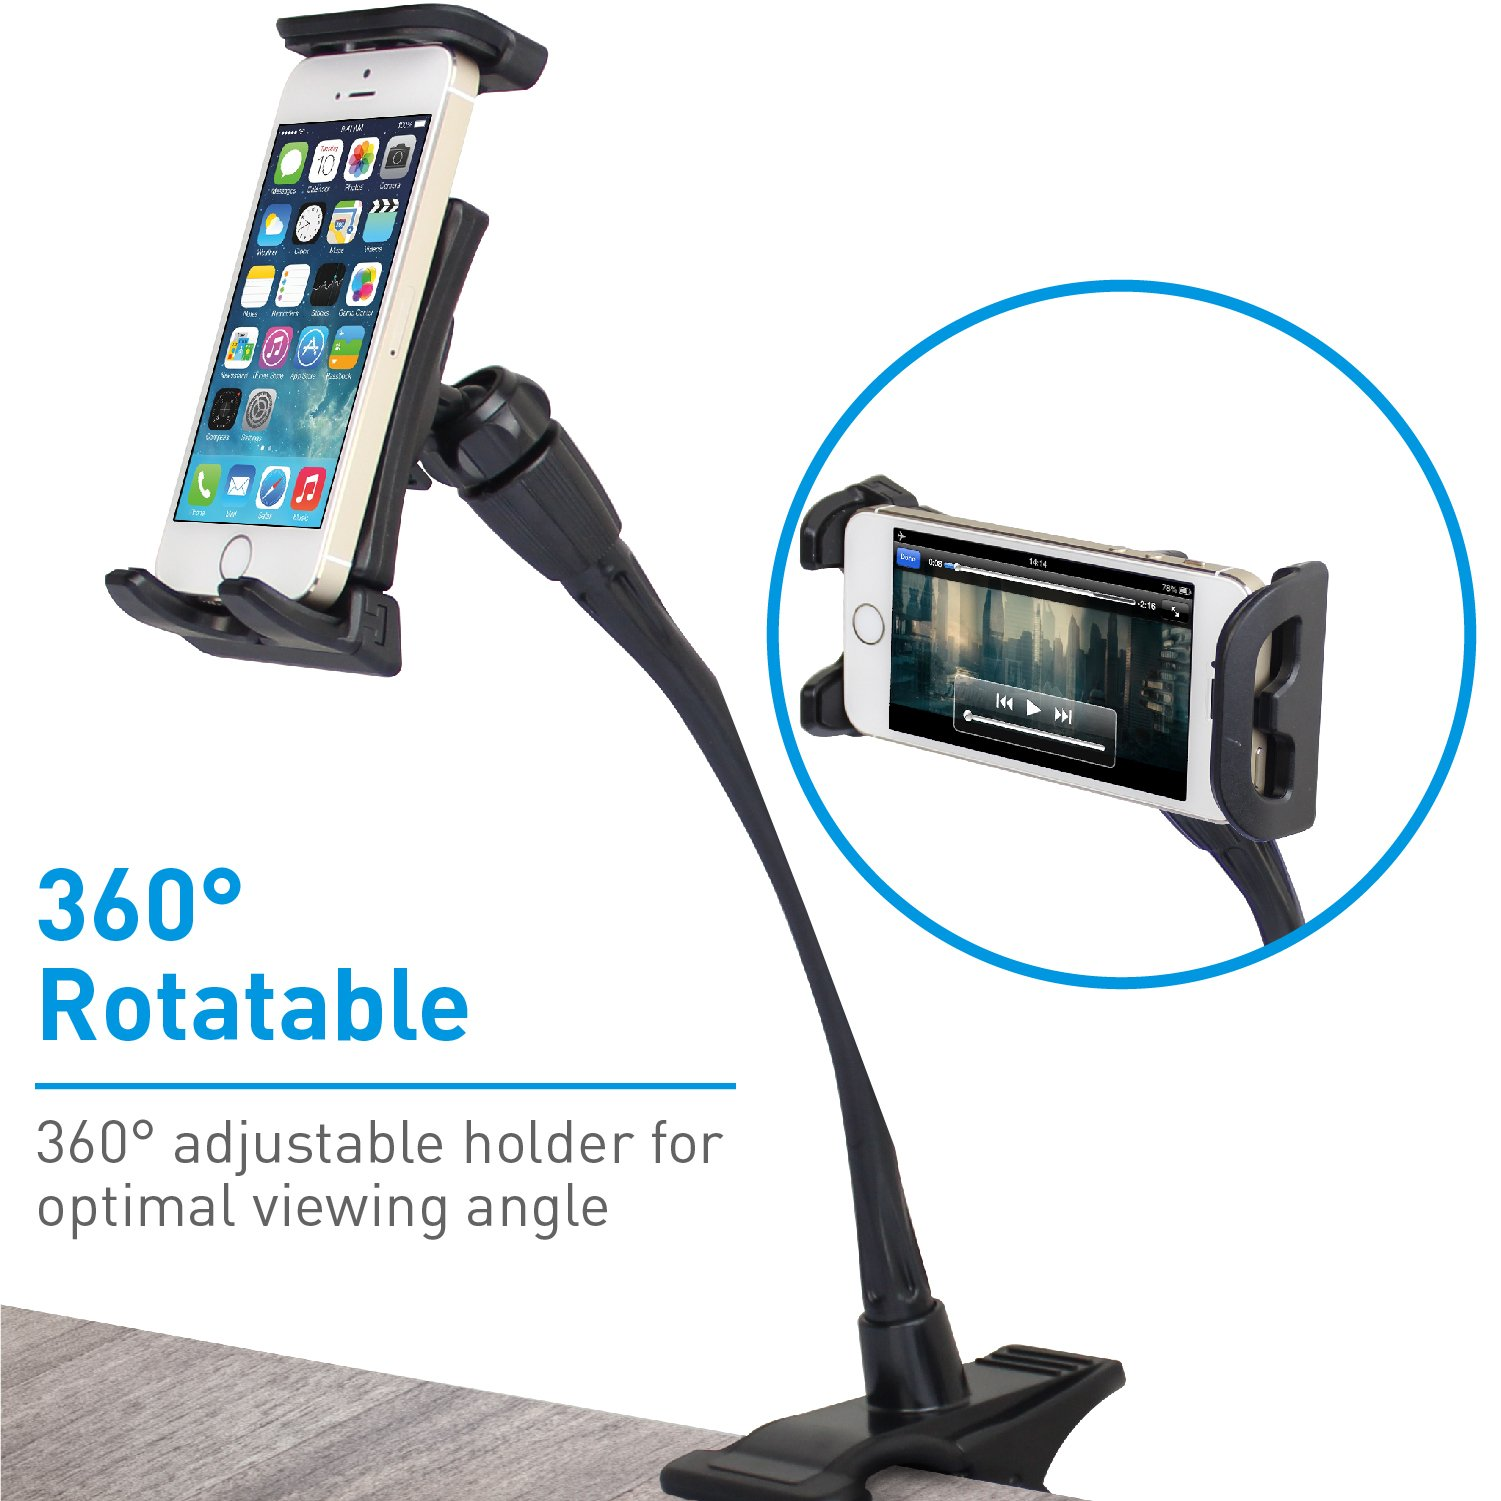 Macally Flexible and Adjustable Gooseneck Clip On Desk or Kitchen Table Holder Clamp Mount for iPad Air / Mini, Tablets, iPhone XS XS Max XR X 8 Plus, Moto Smartphones, & Nintendo Switch (ClipMount) by Macally (Image #5)